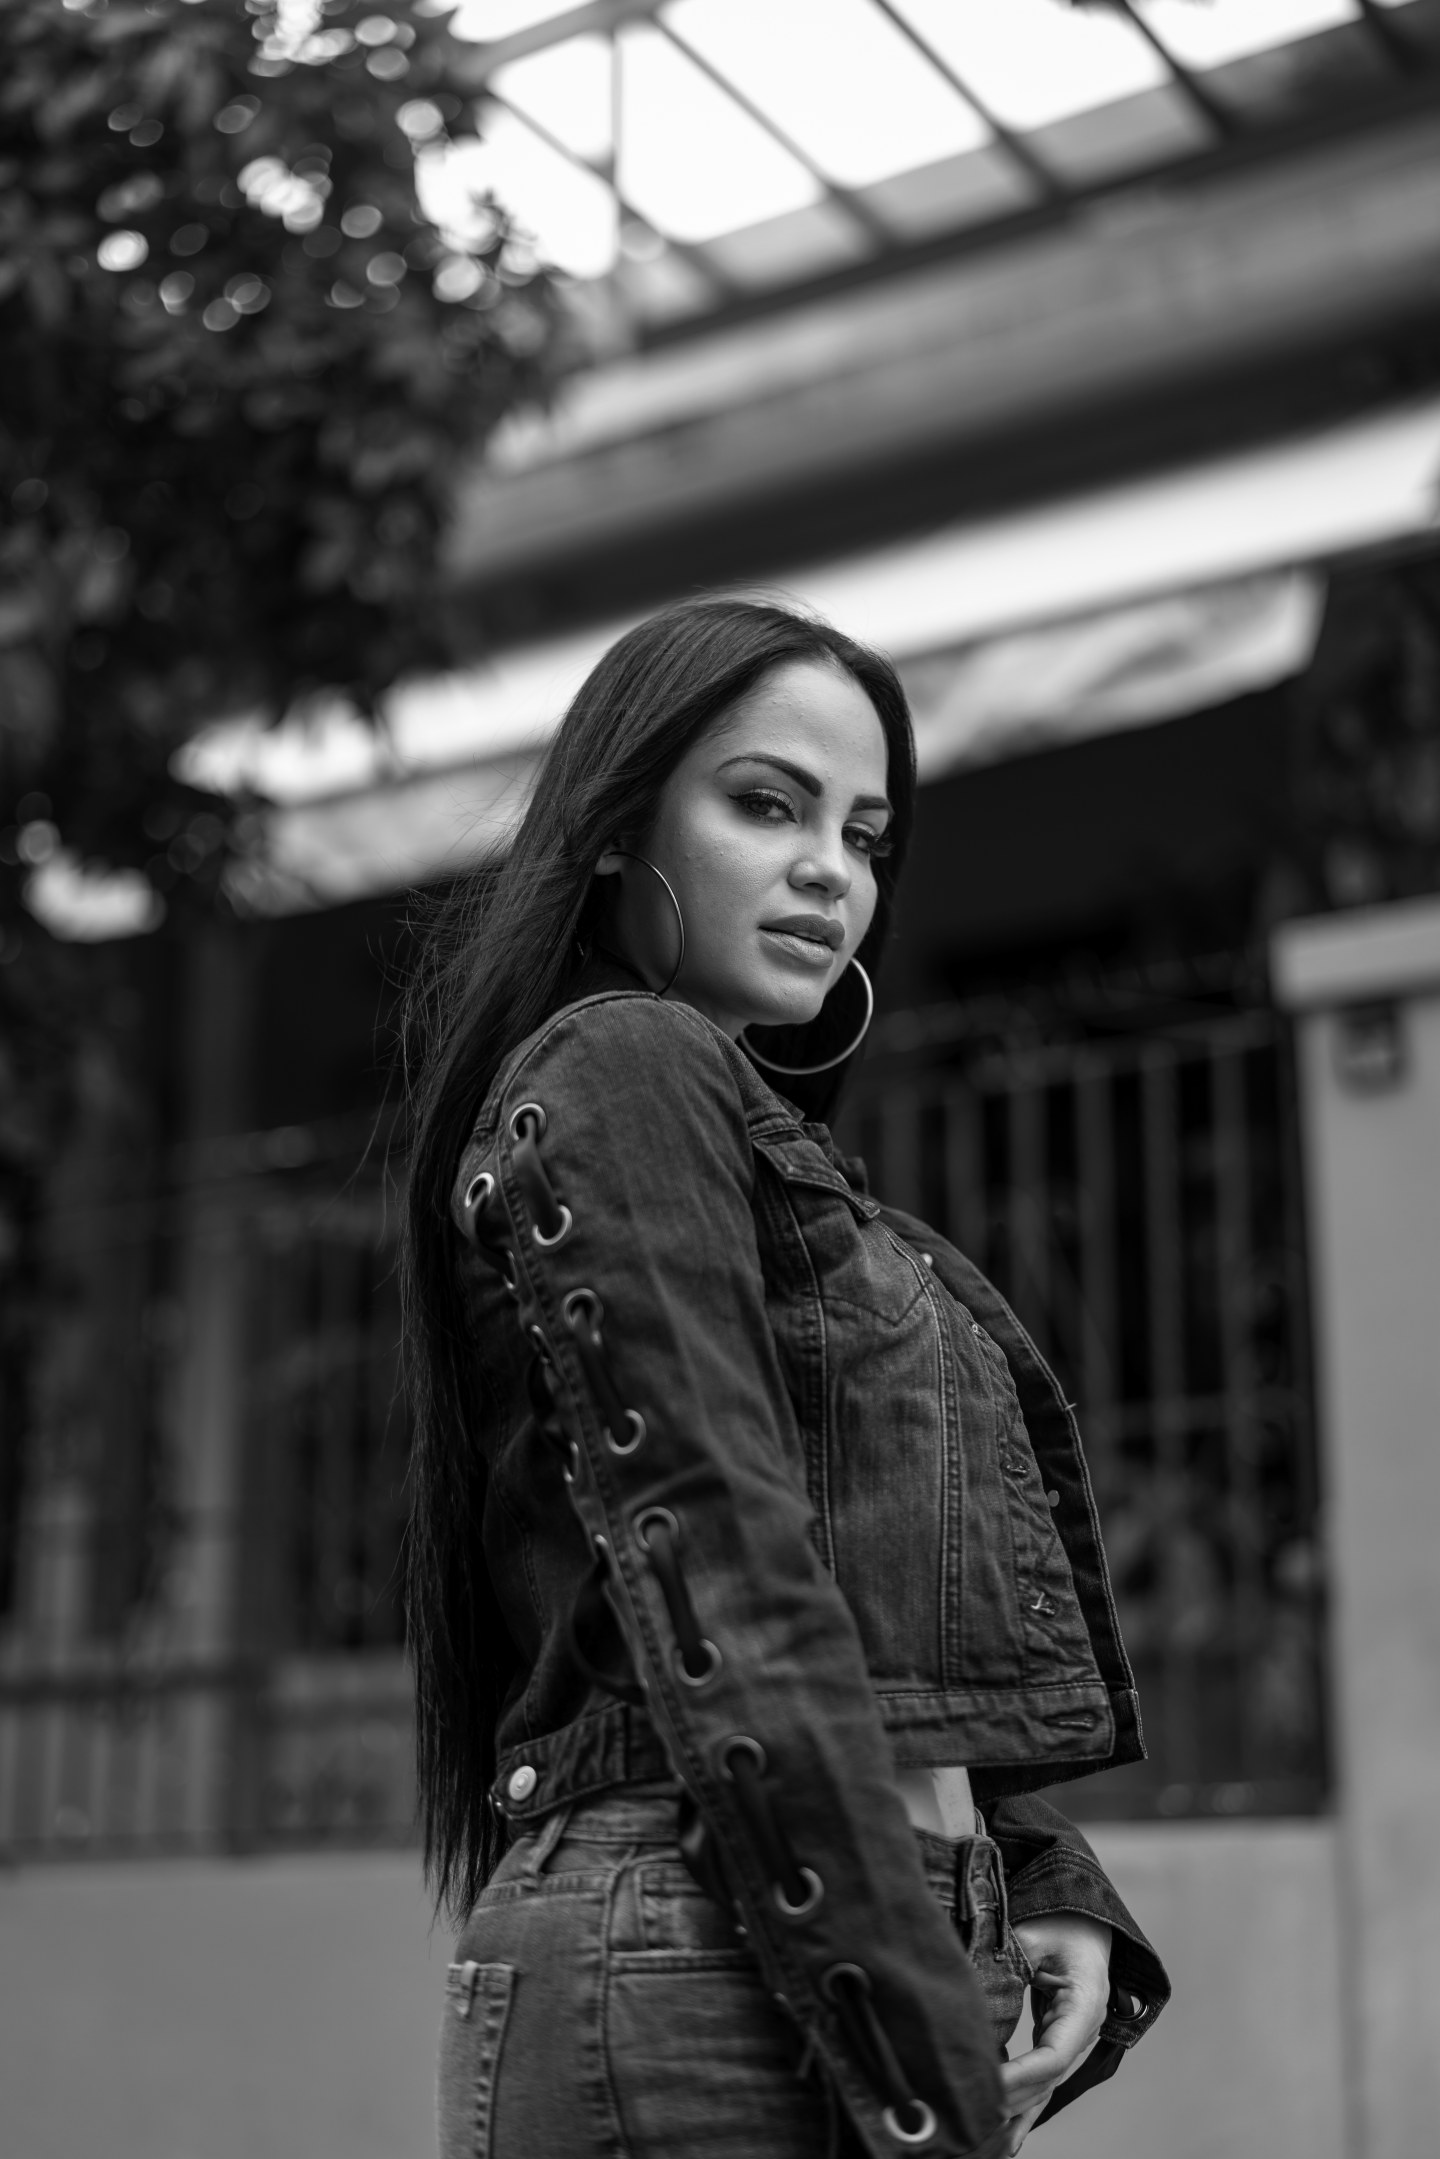 Natti Natasha is ushering in a brighter future for reggaeton